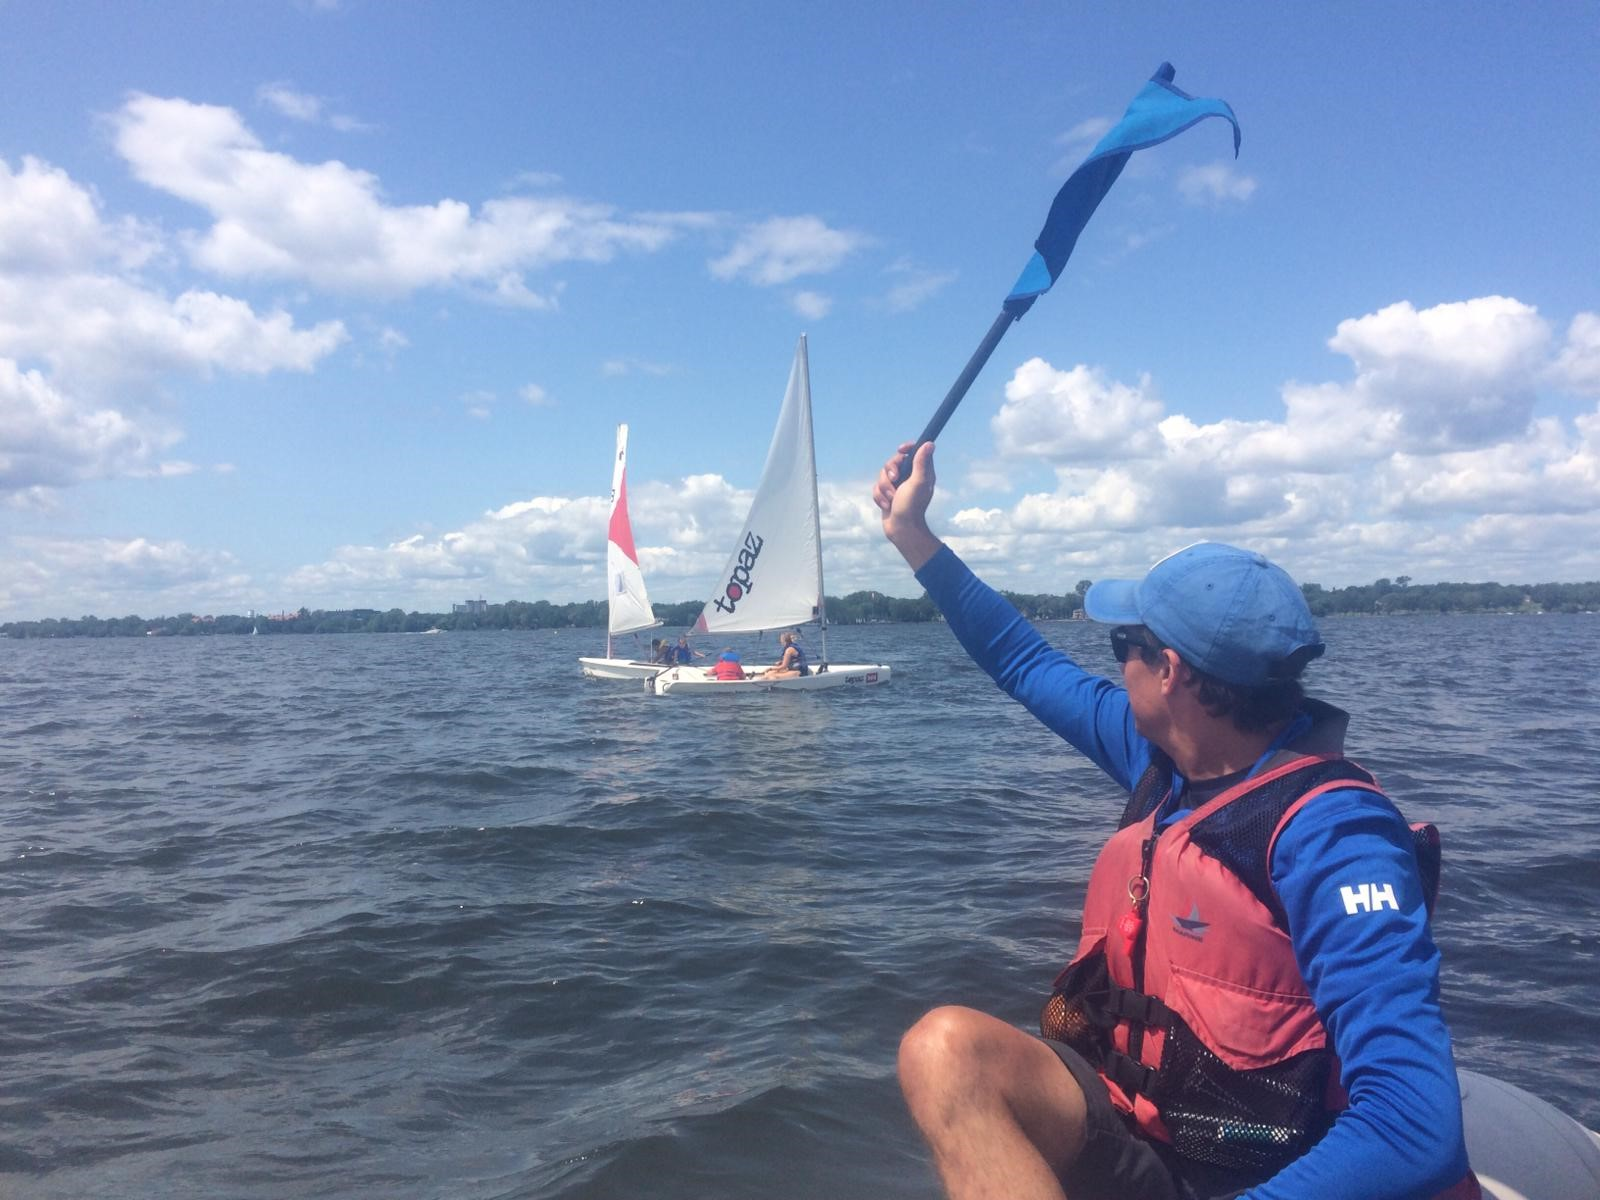 Become a Dinghy Sailing Instructor